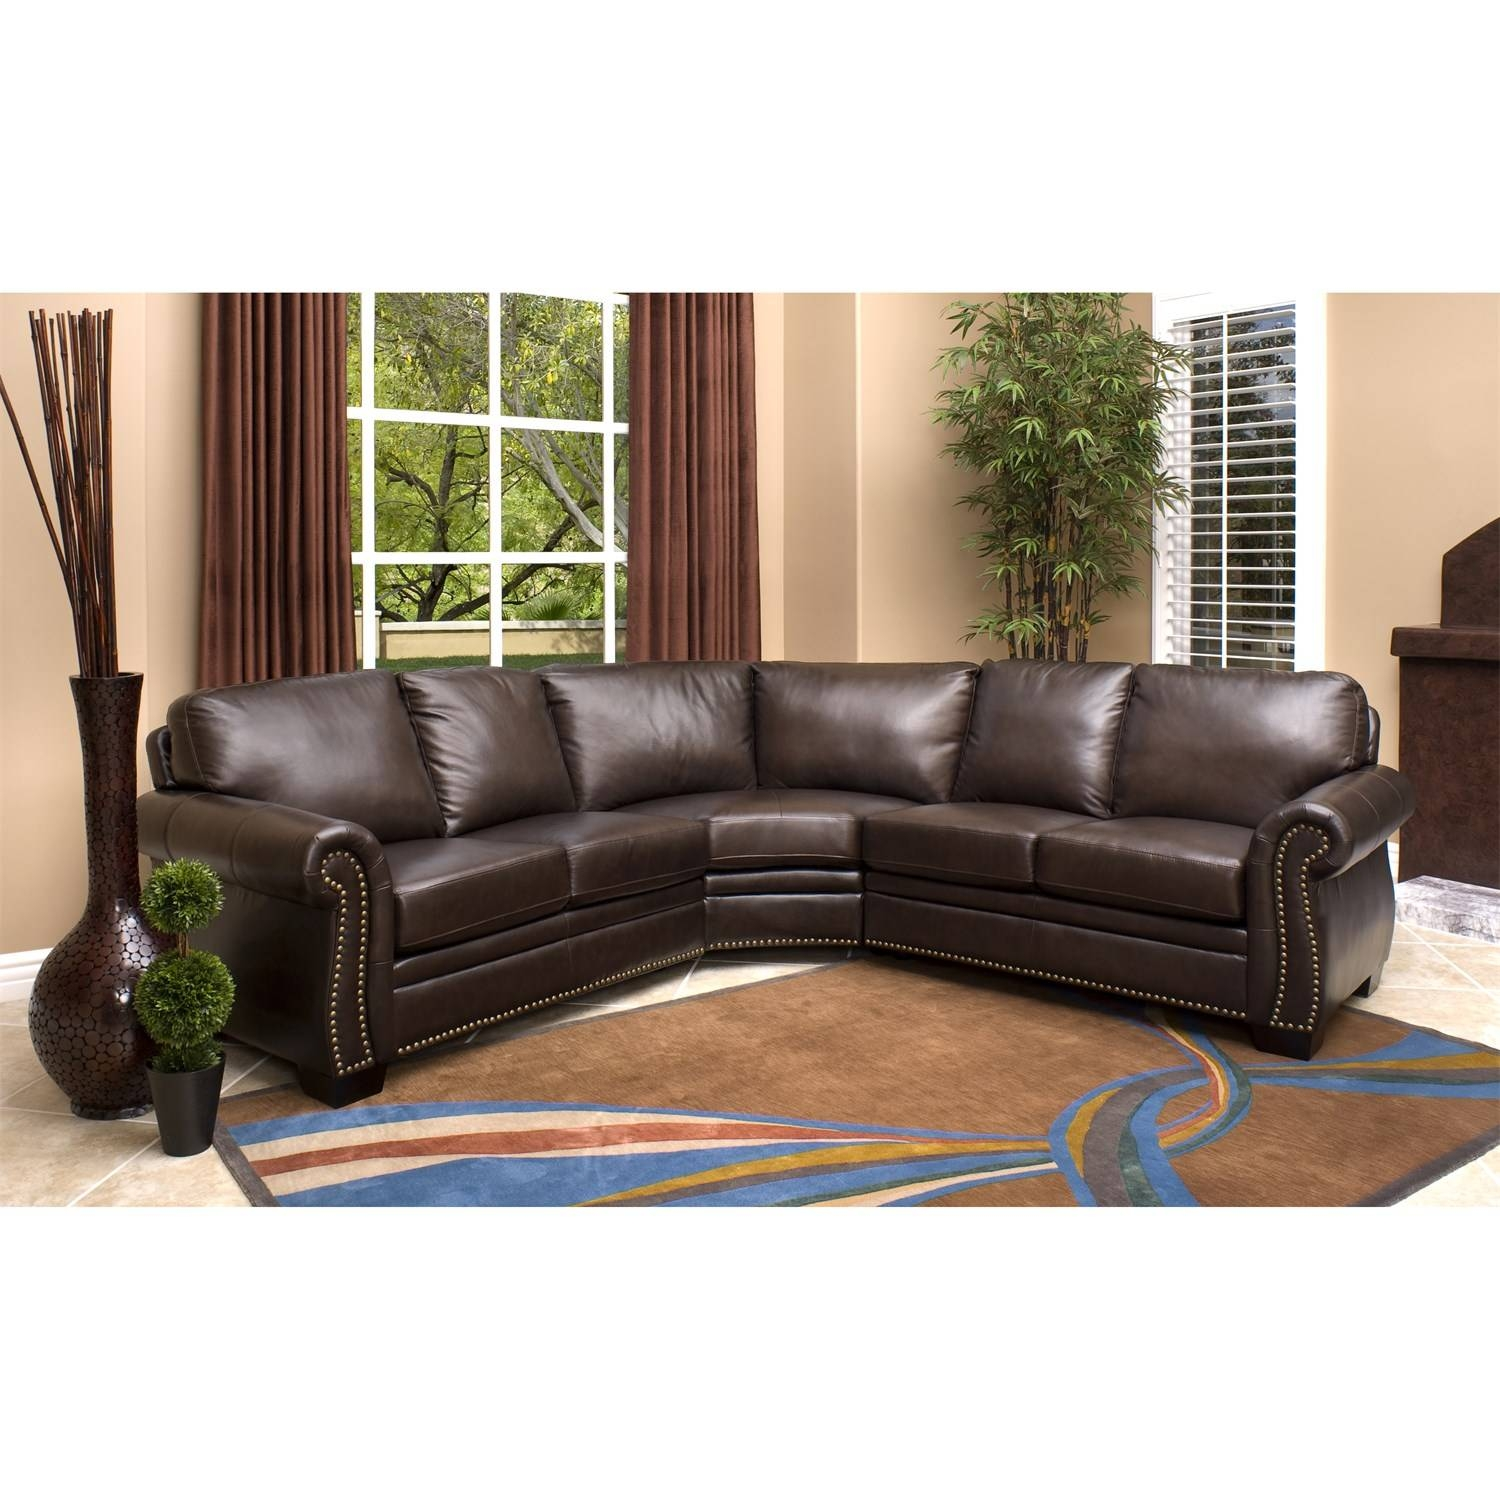 Abbyson Living Ci N410 Brn Oxford Italian Leather Sectional Sofa For Abbyson Sectional Sofas (View 2 of 15)